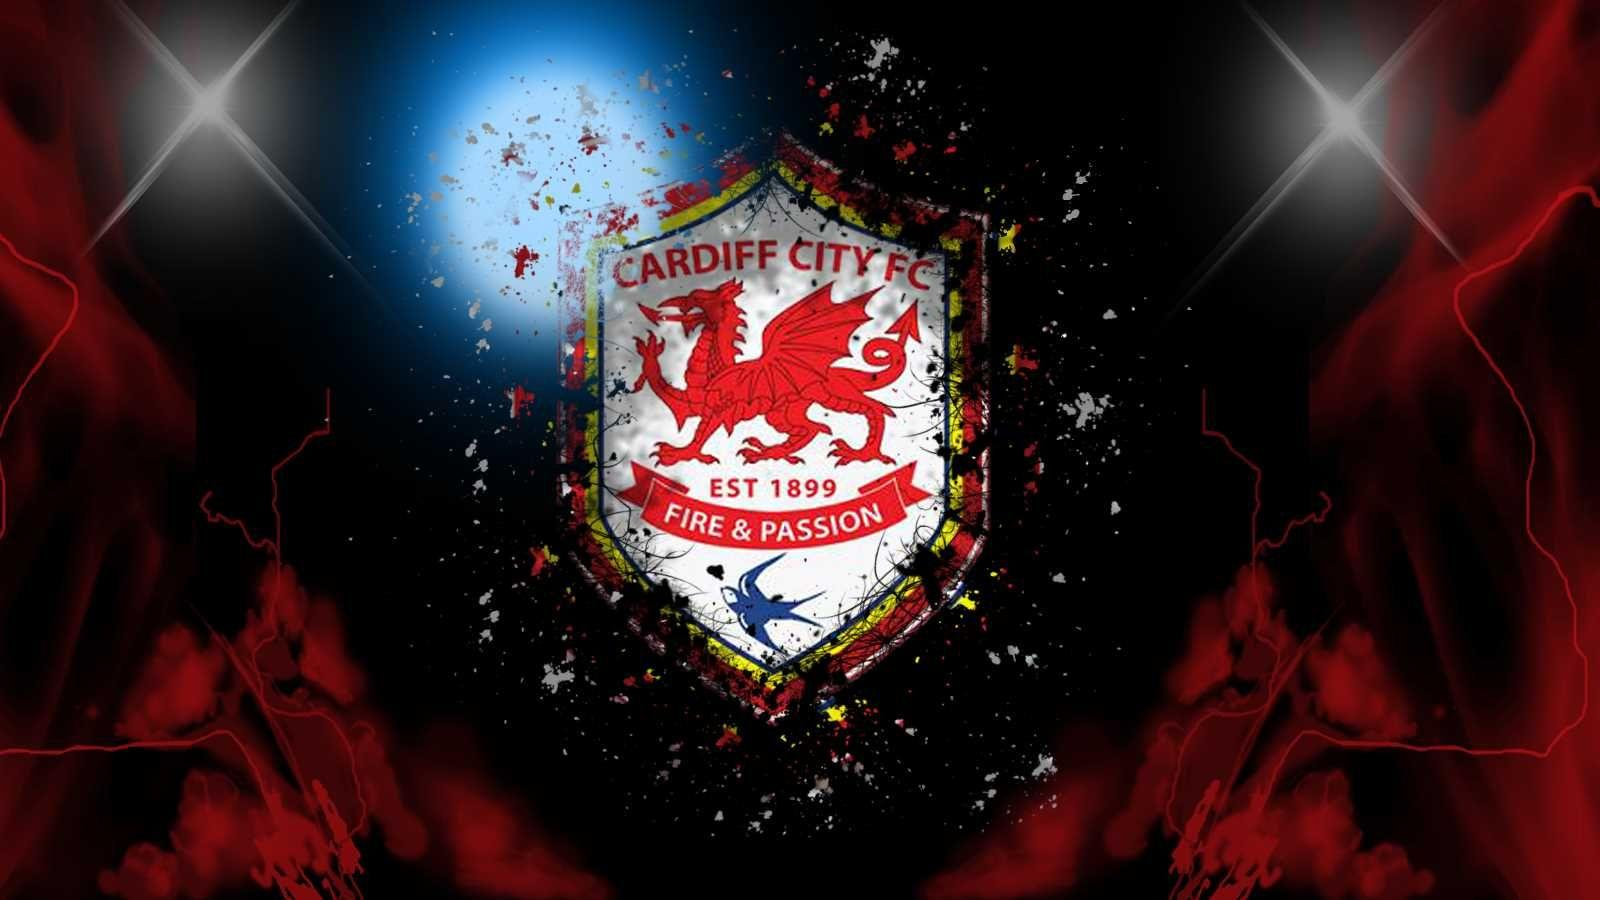 Cardiff City FC Fire and Passion Logo Wallpaper HD | Wallpapers ...